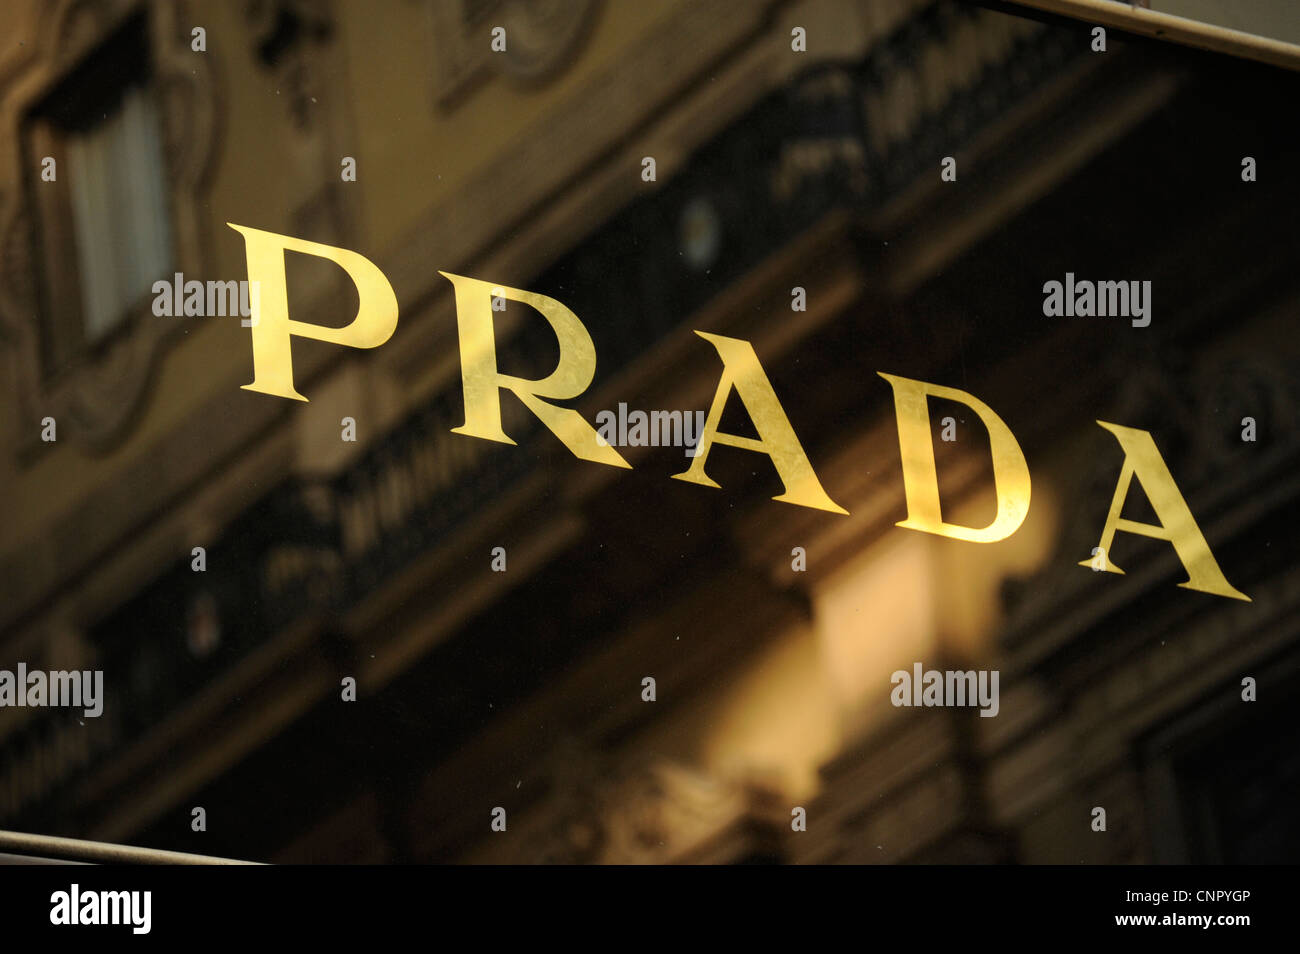 Prada shop. Galleria Vittorio Emanuele II. Milan, Italy Stock Photo